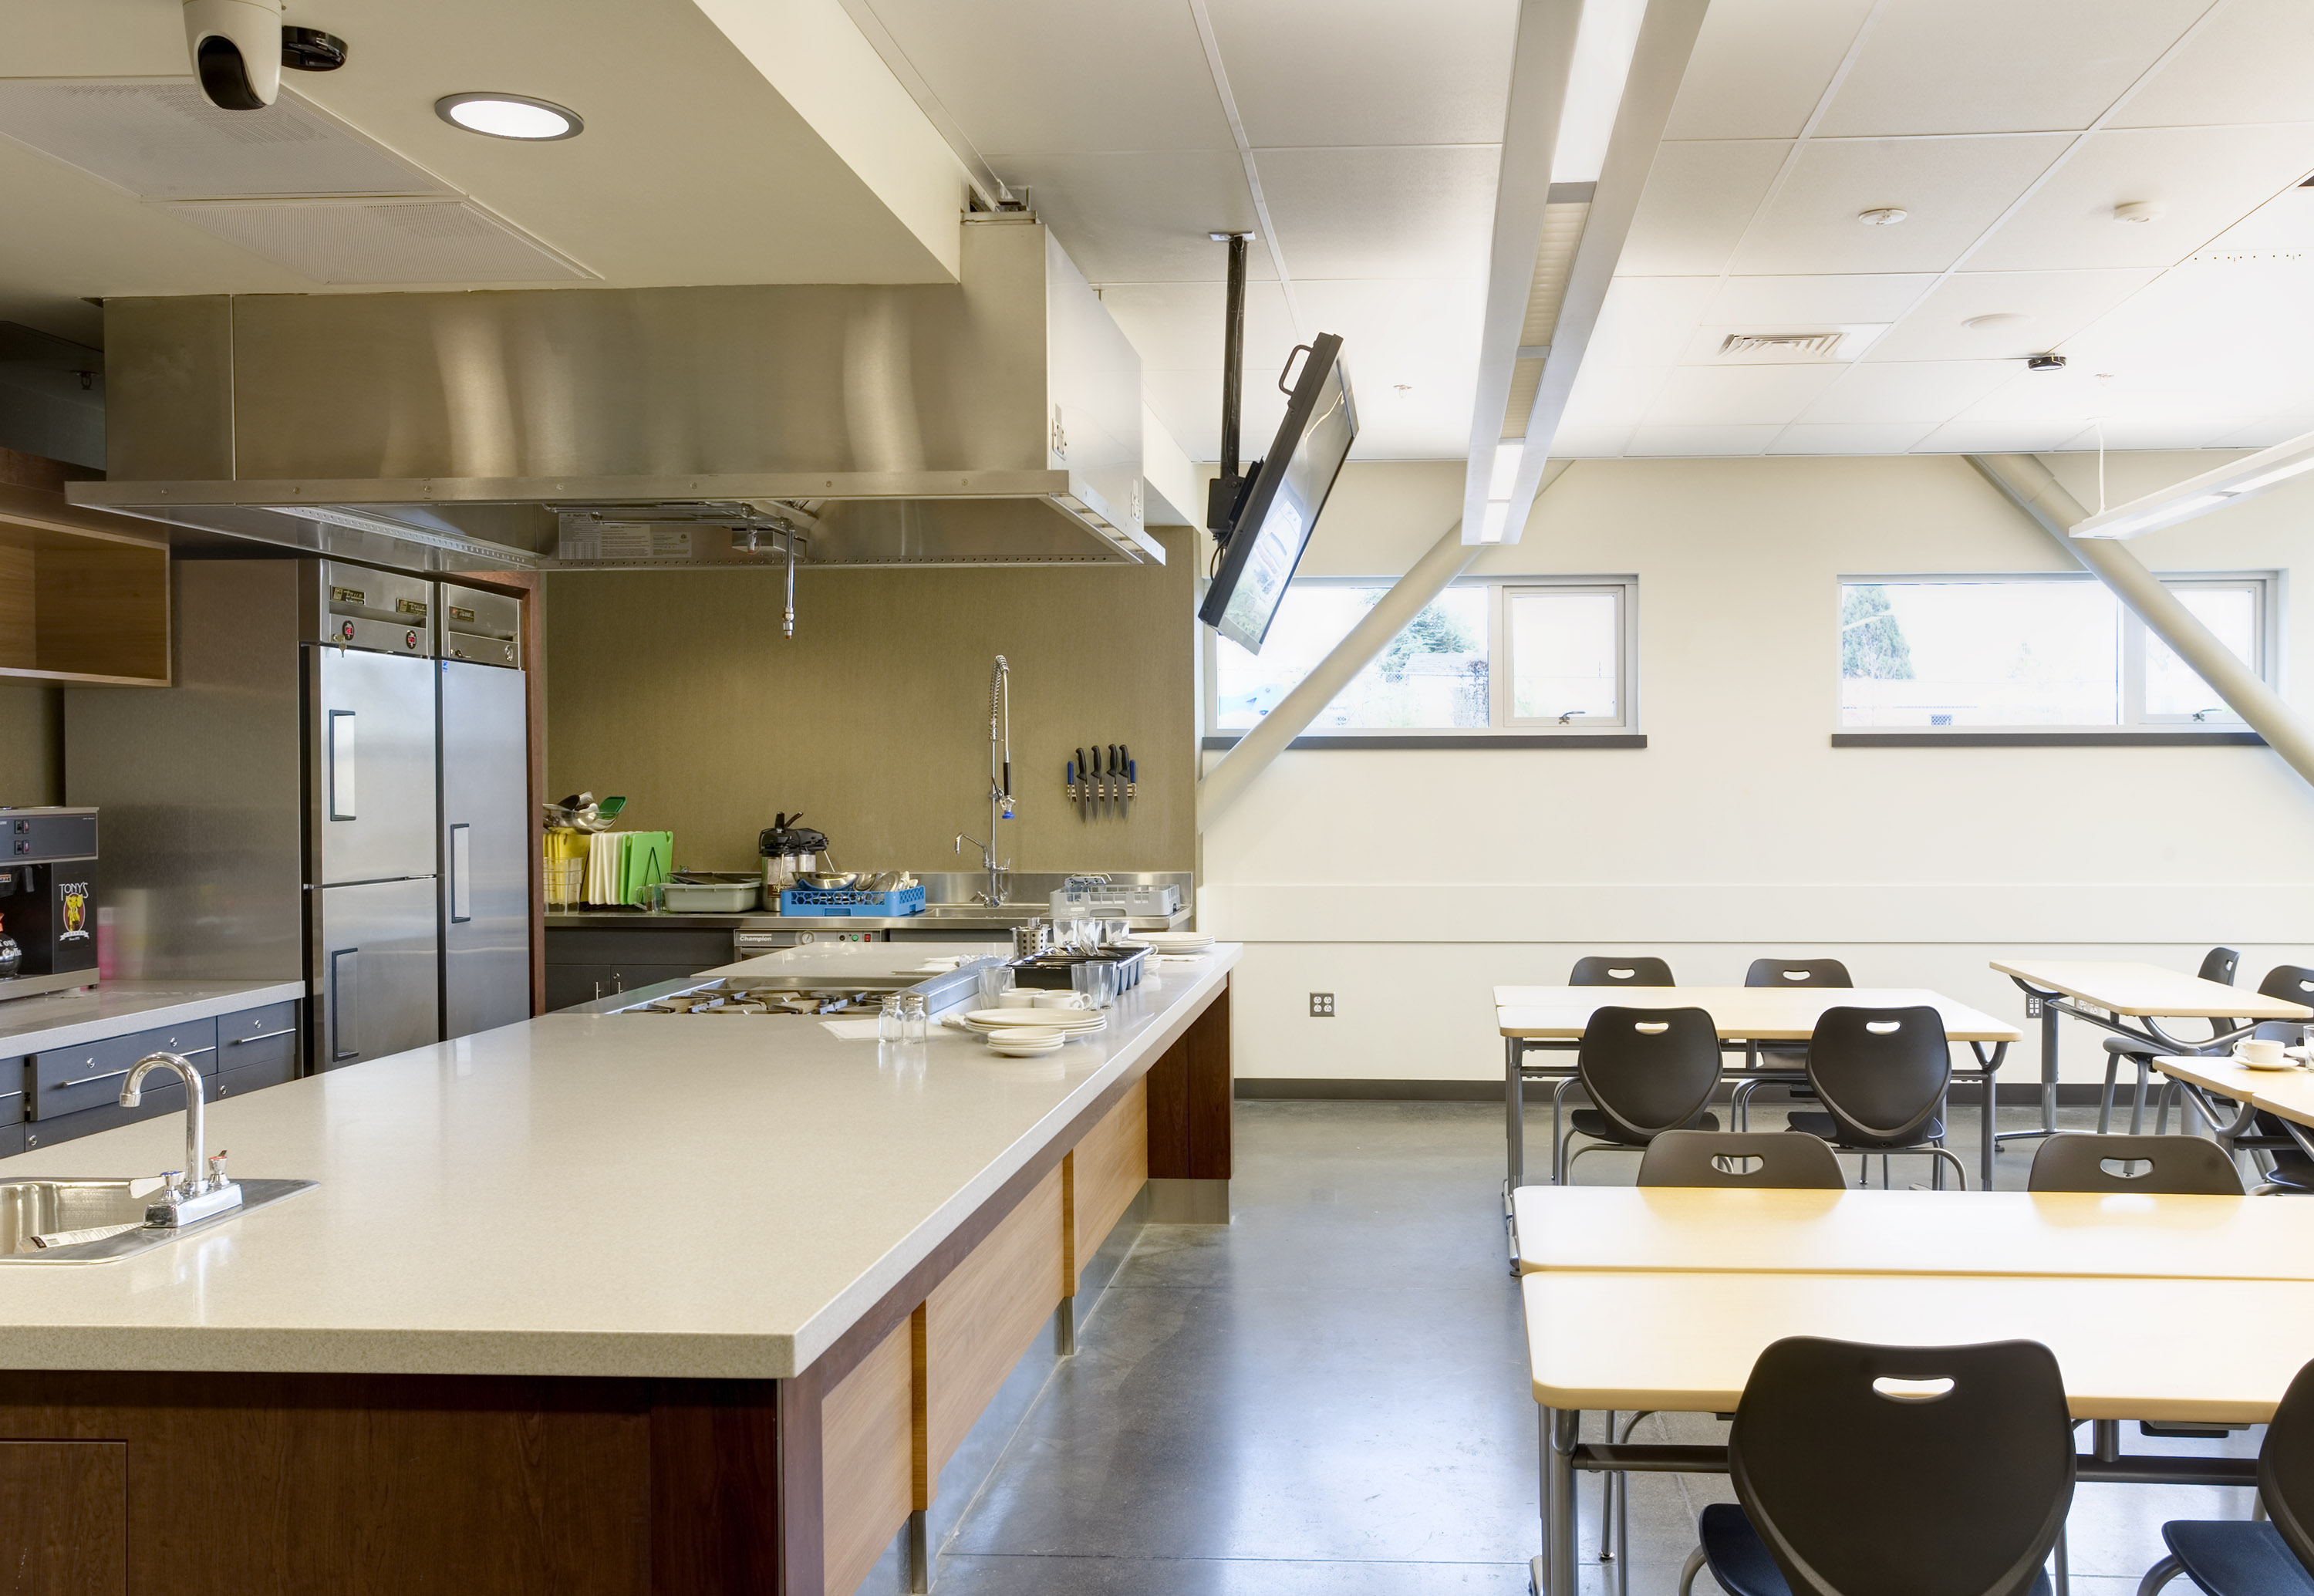 Showing the culinary classroom, both the main work station and table and chairs.